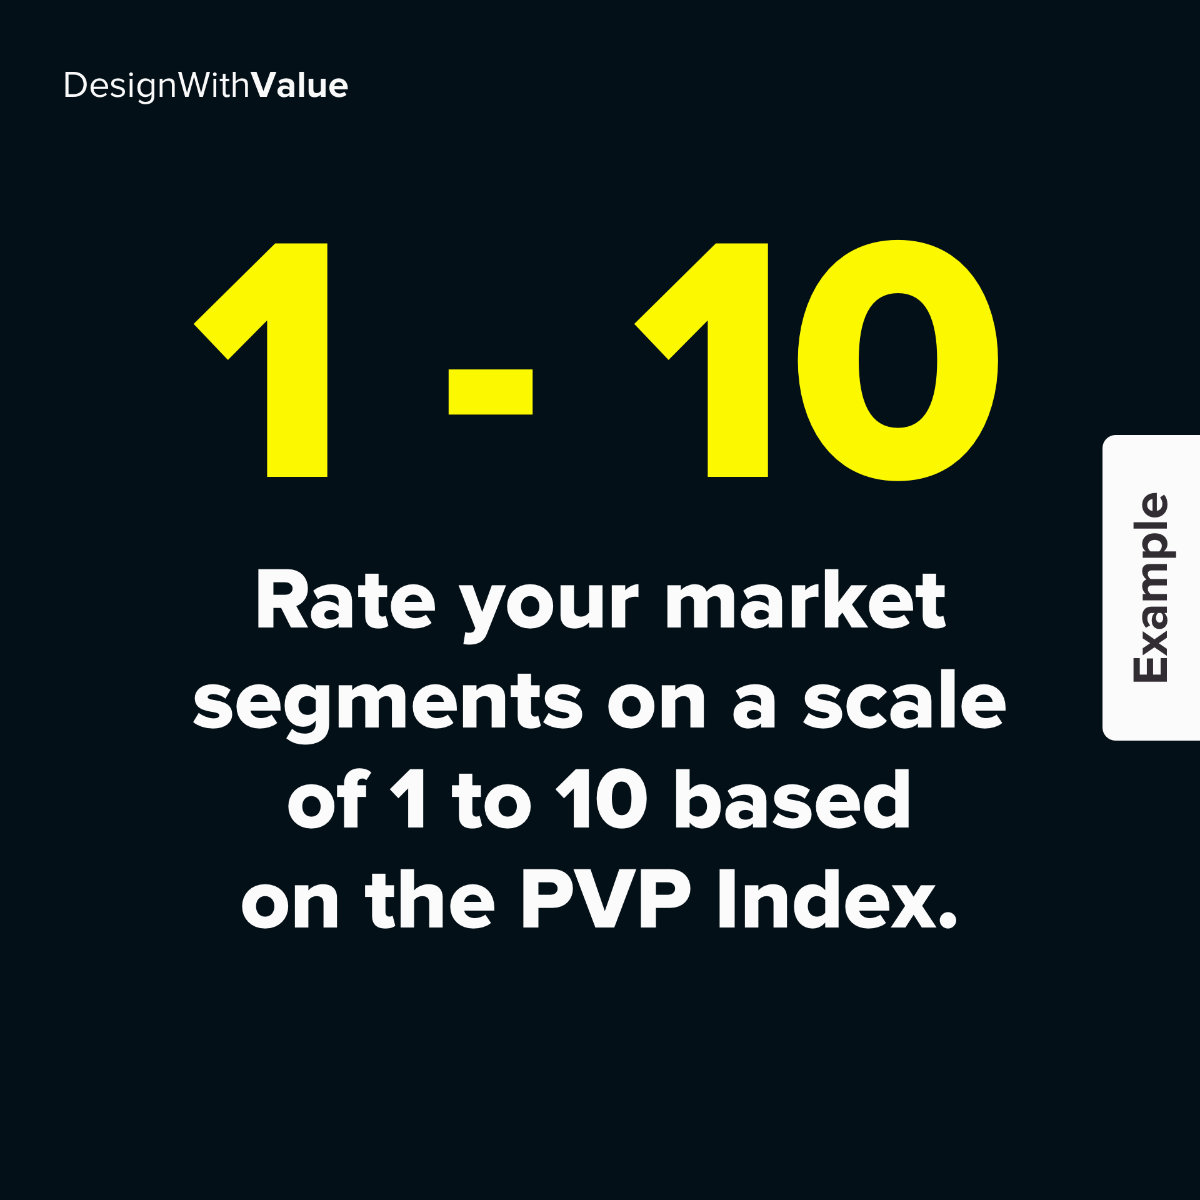 Rate your market segments on a scale of 1 to 10 based on the PVP index